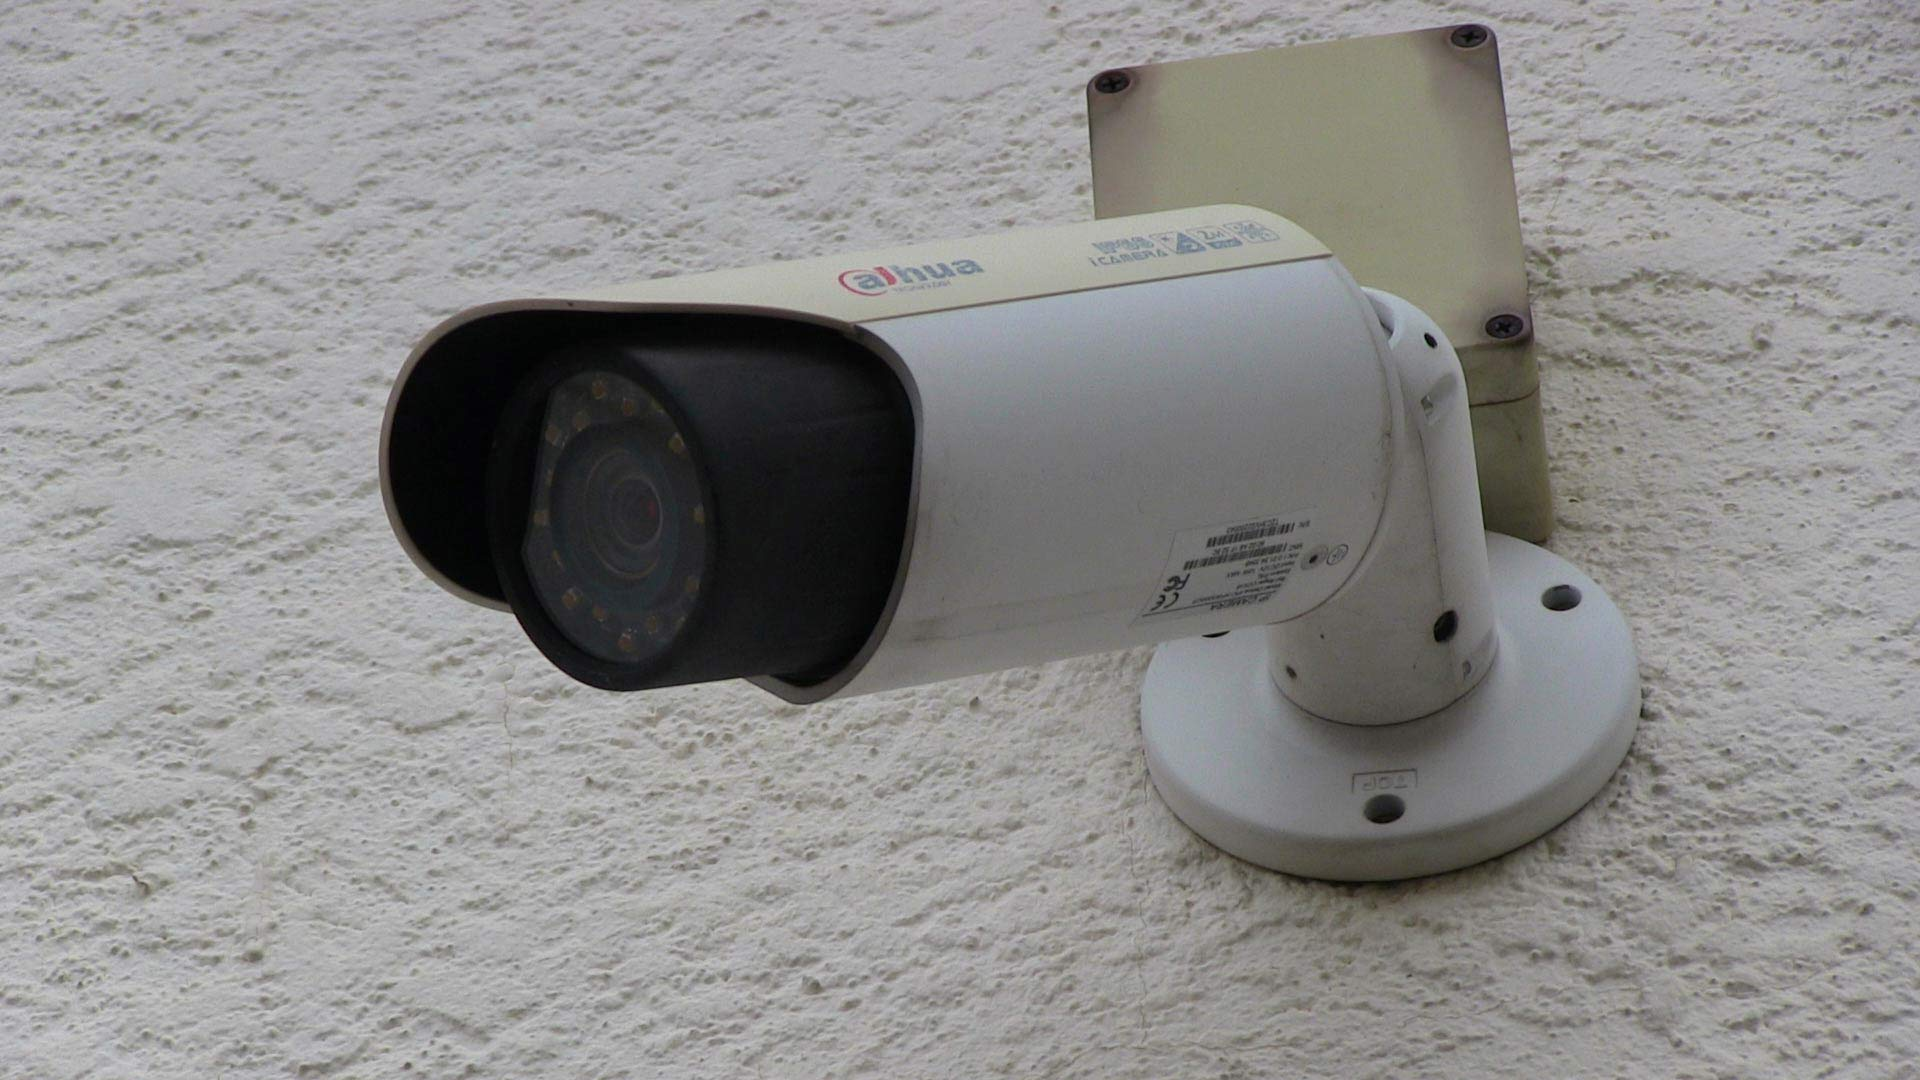 Surveillance Camera on the side of a substation.